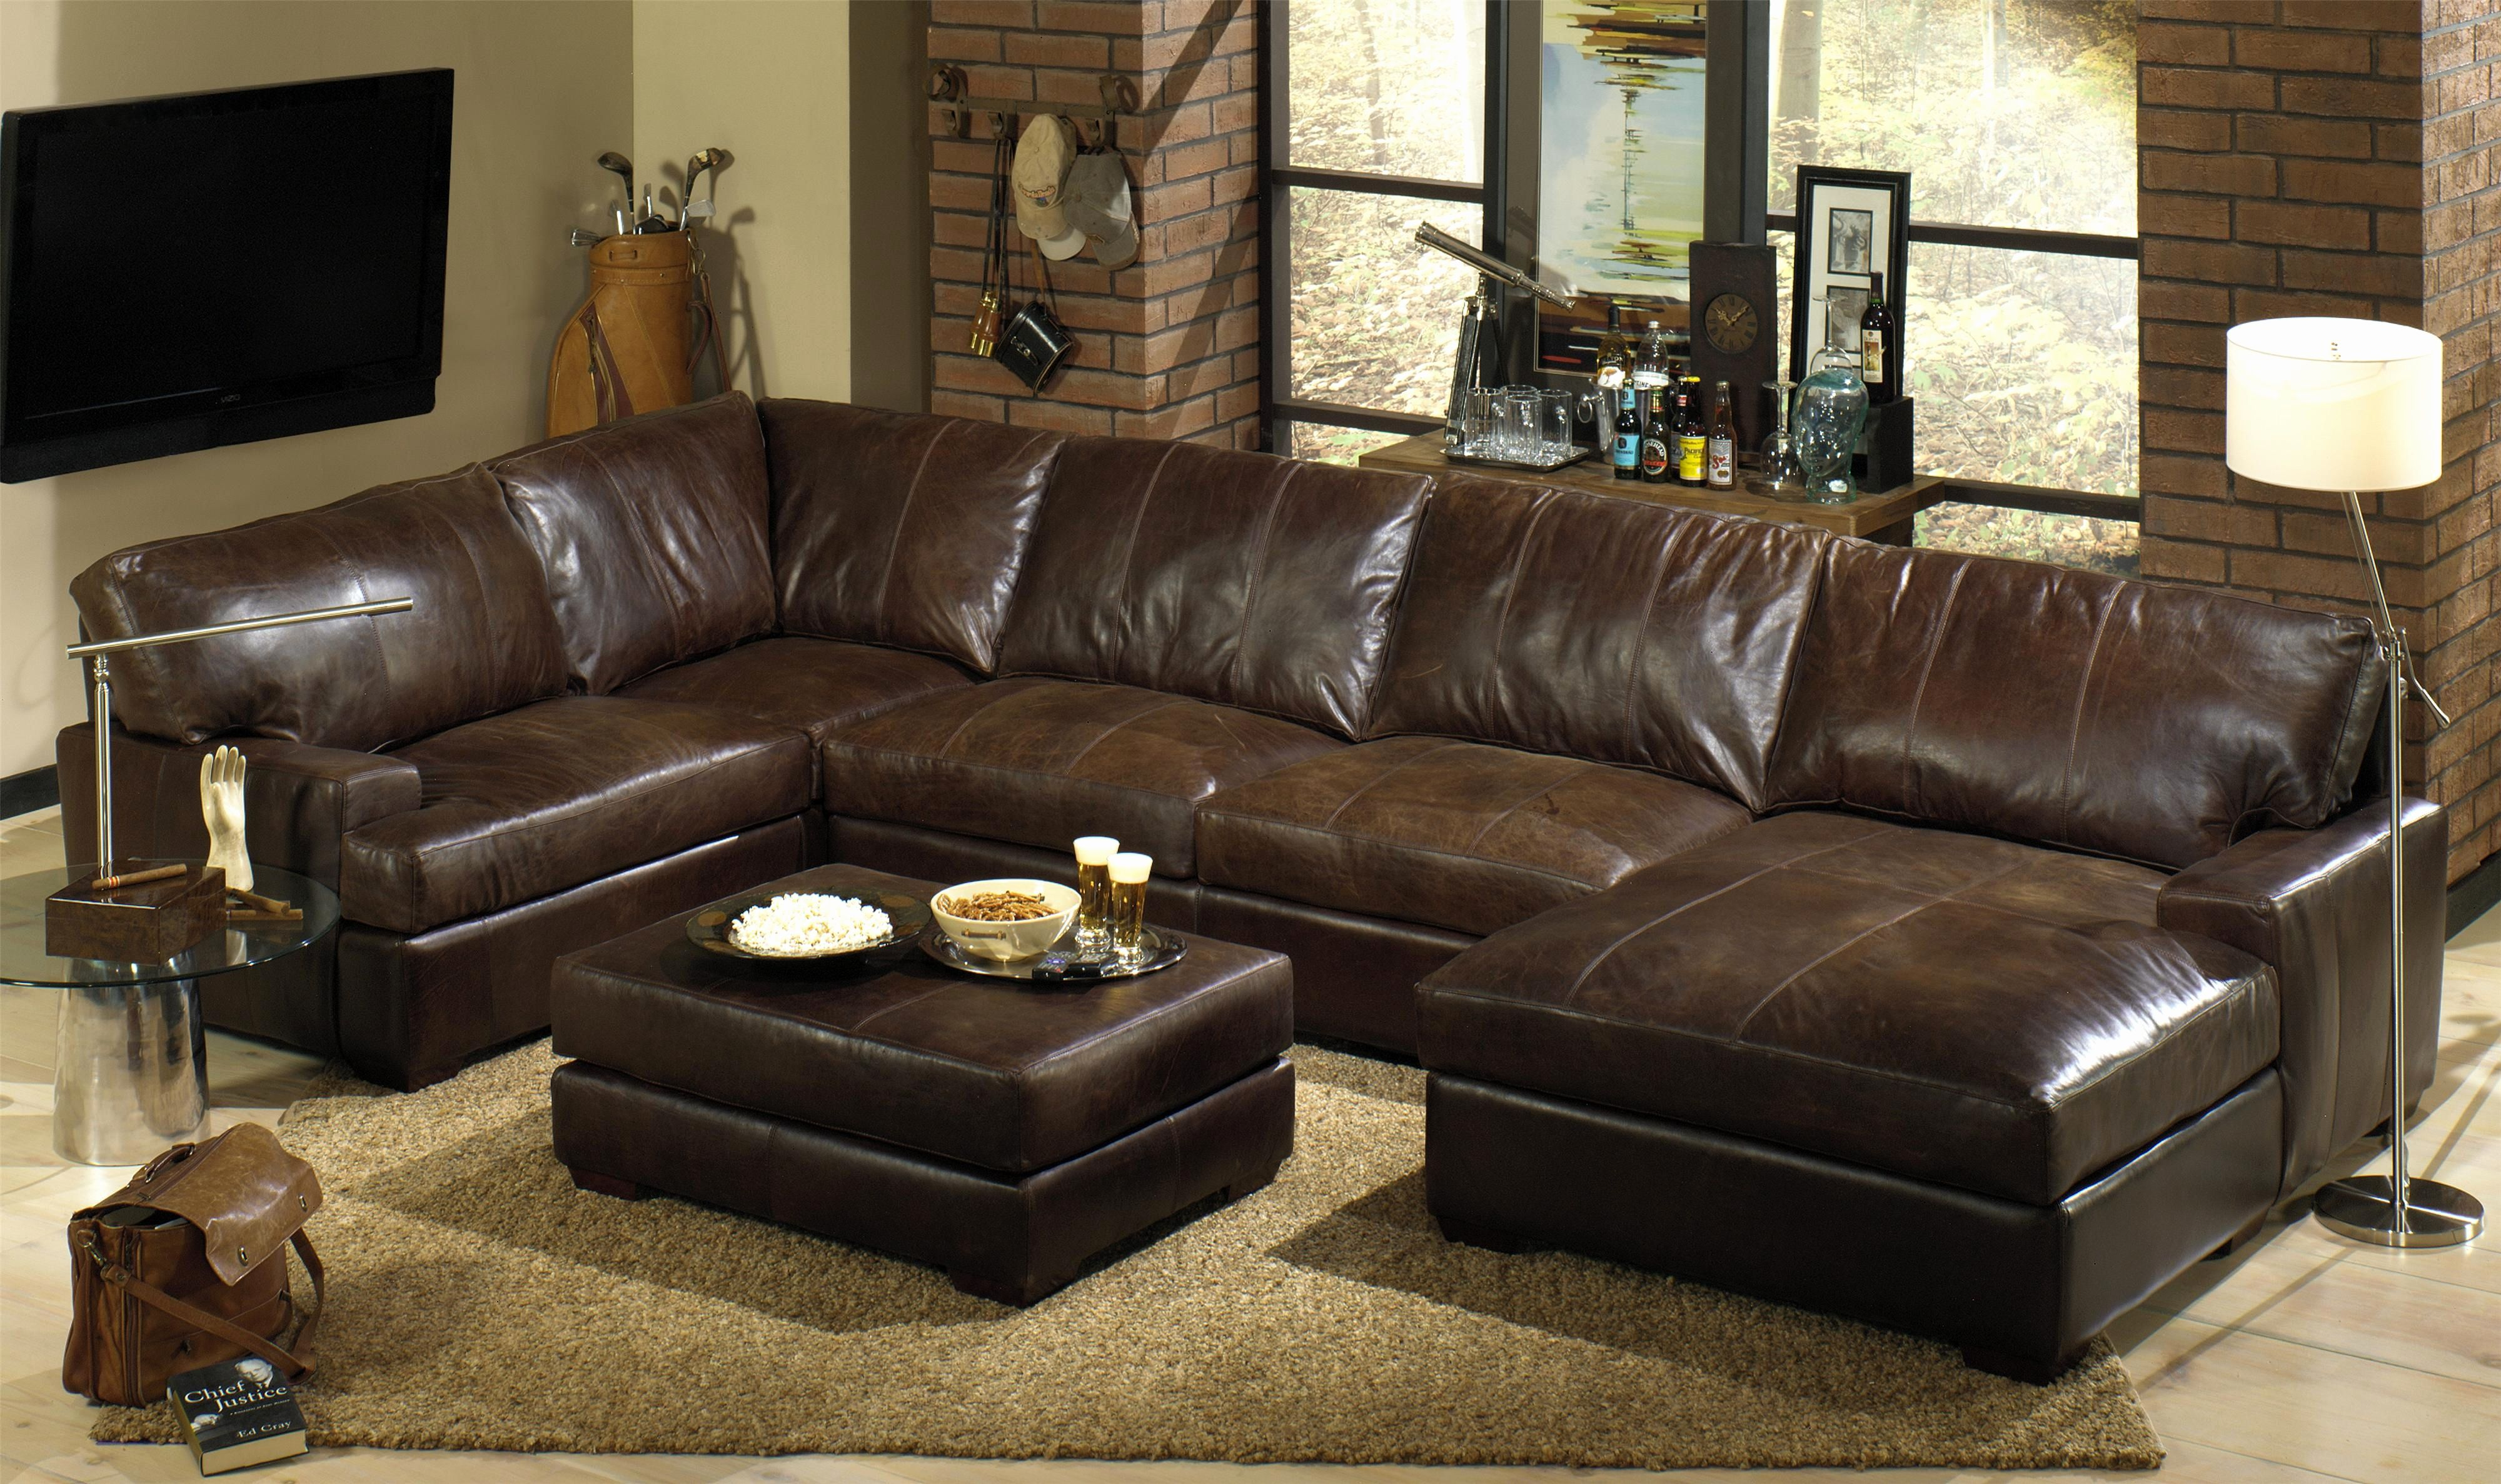 Beautiful Contemporary Reclining Sectional Sofa Shot Contemporary Reclining Sec Sectional Sofa With Chaise Sectional Sofa With Recliner Leather Couch Sectional